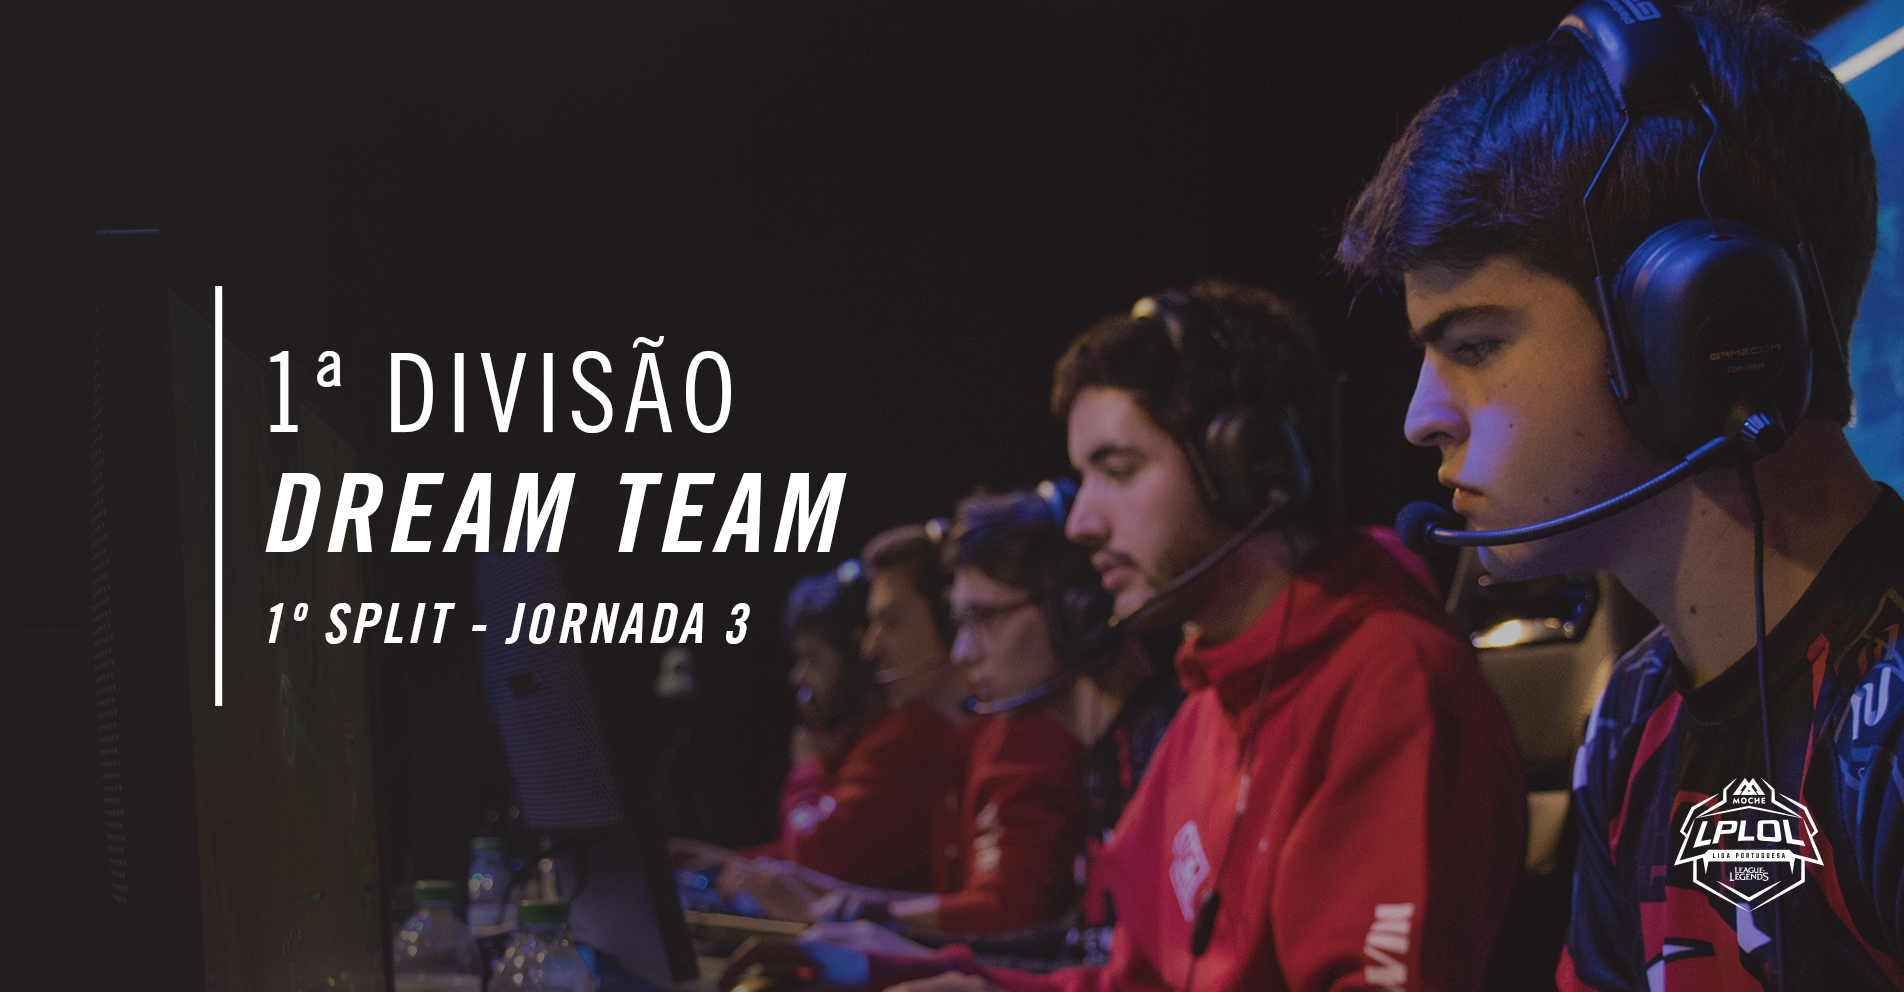 DREAM TEAM 1º SPLIT, JORNADA 3 DE 2018